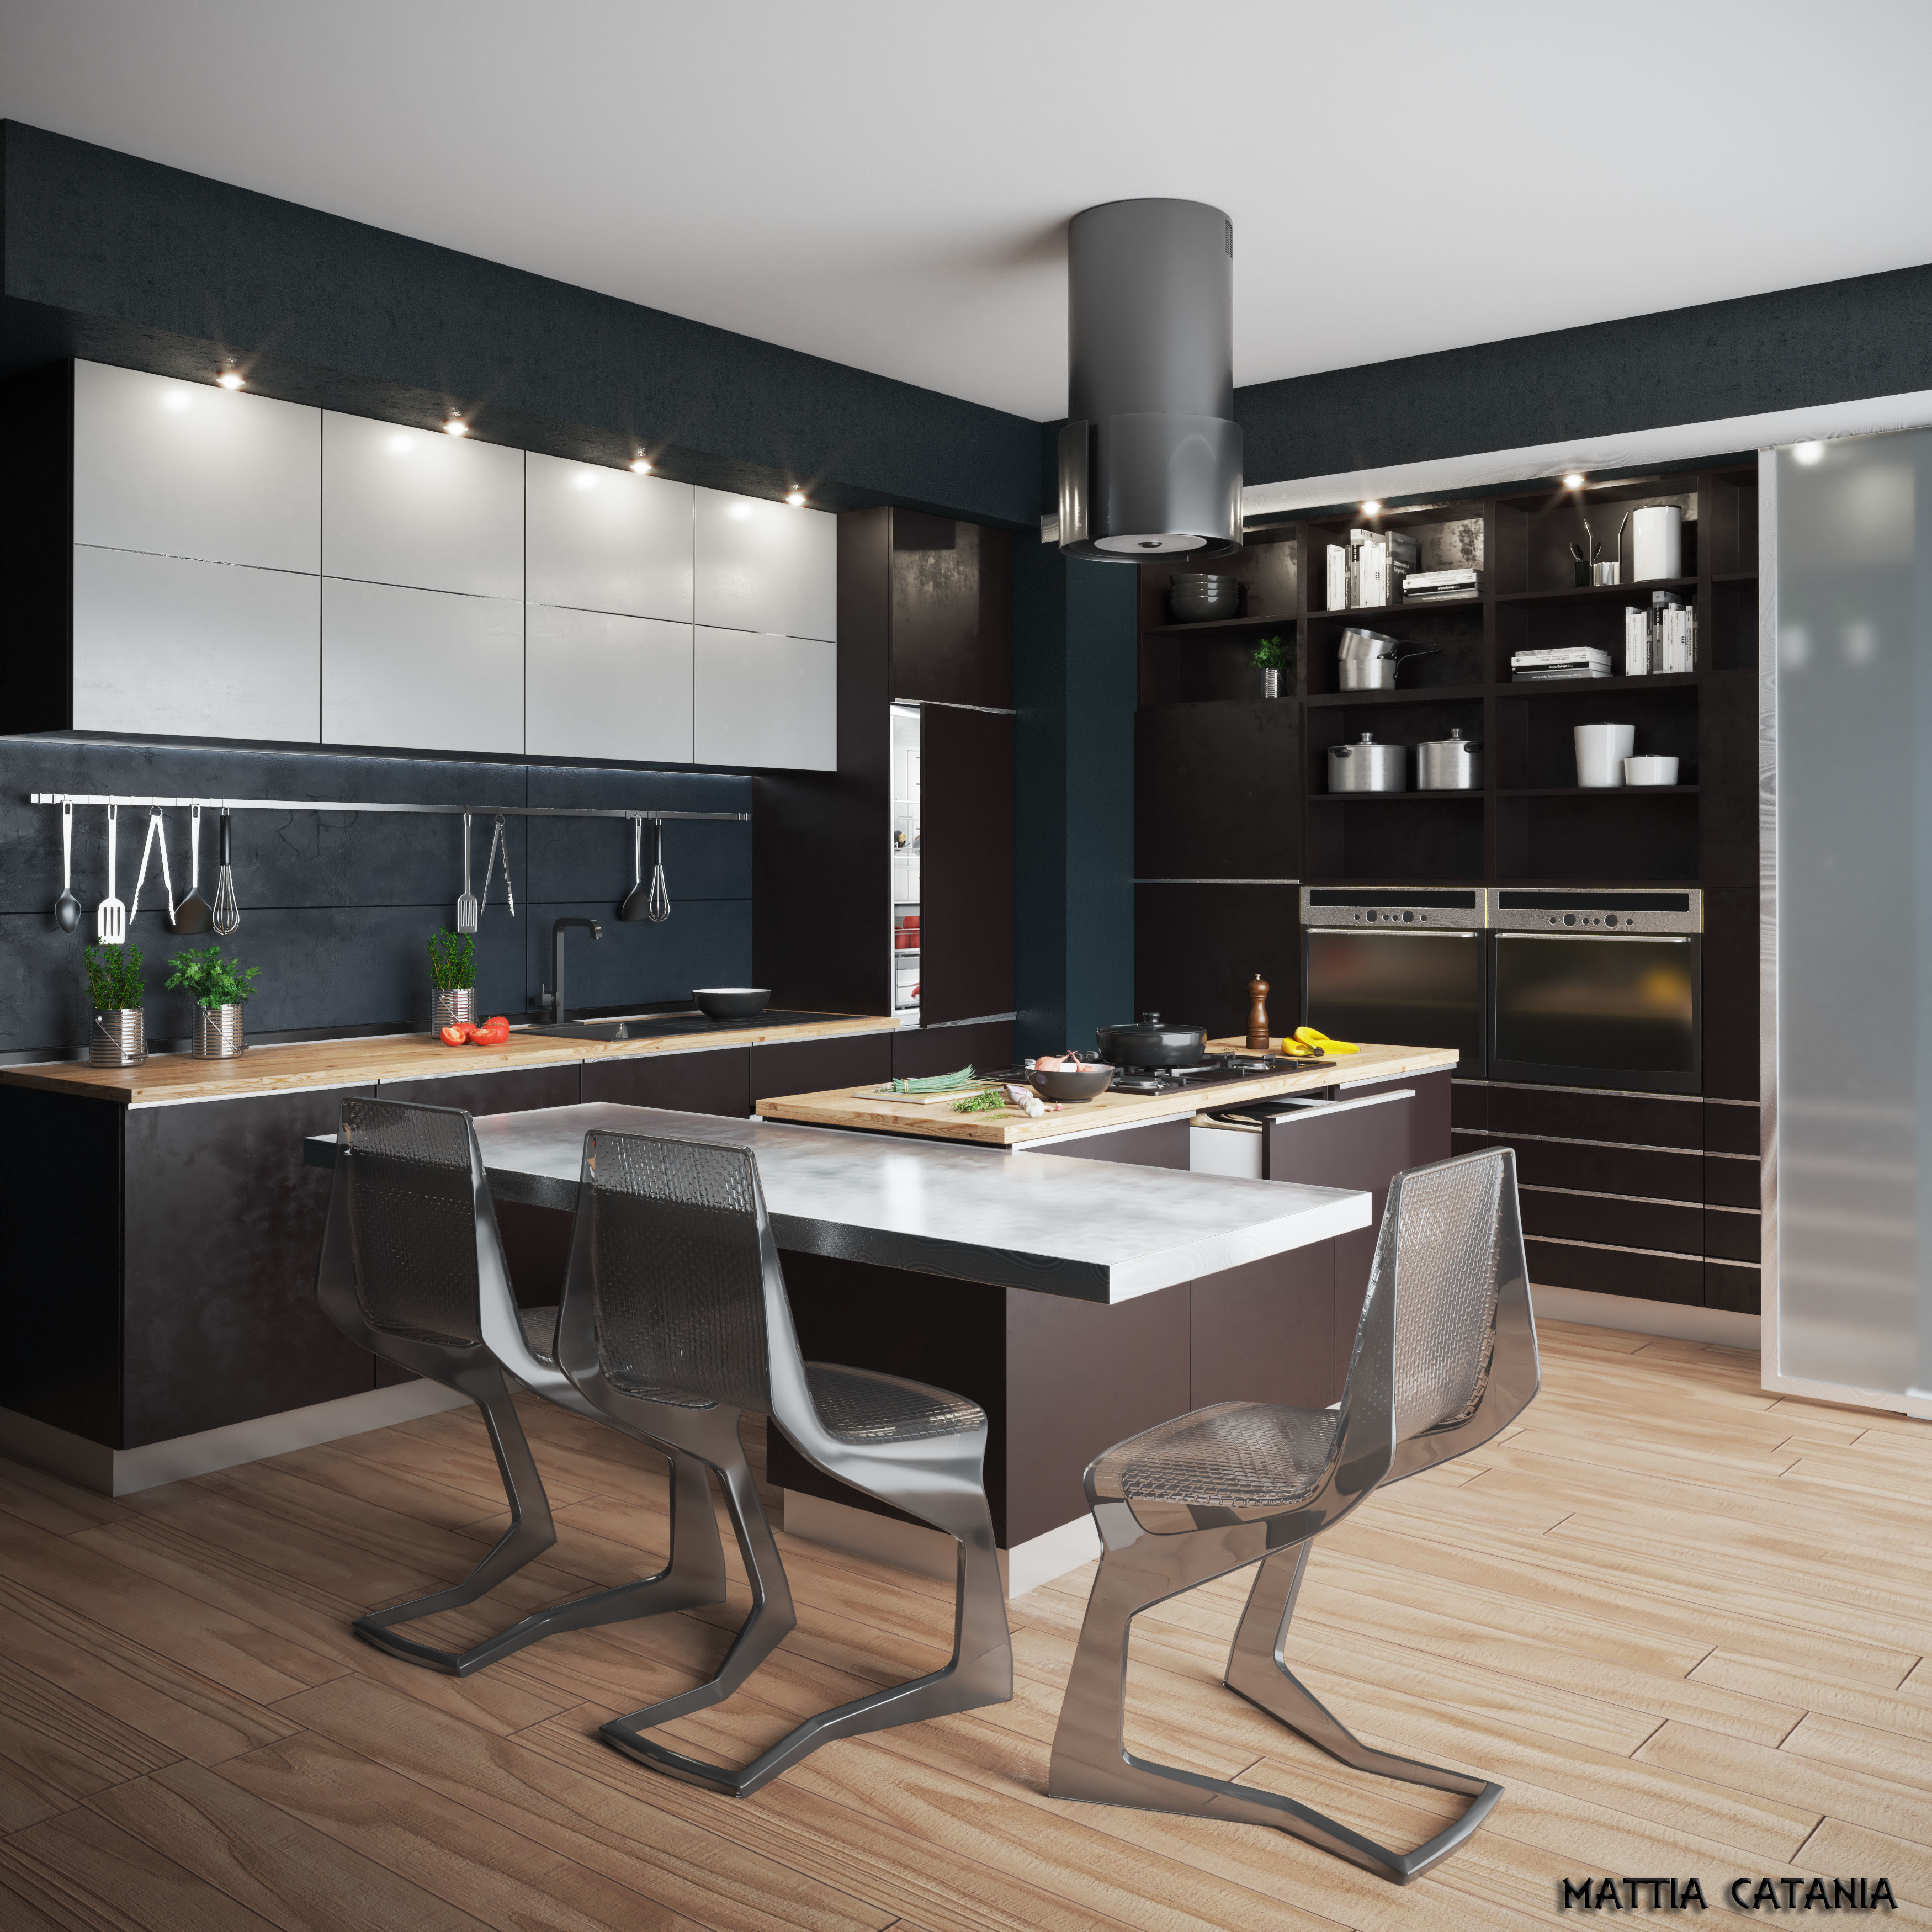 3D Model Kitchen 168 Free Download on Model Kitchen  id=22028